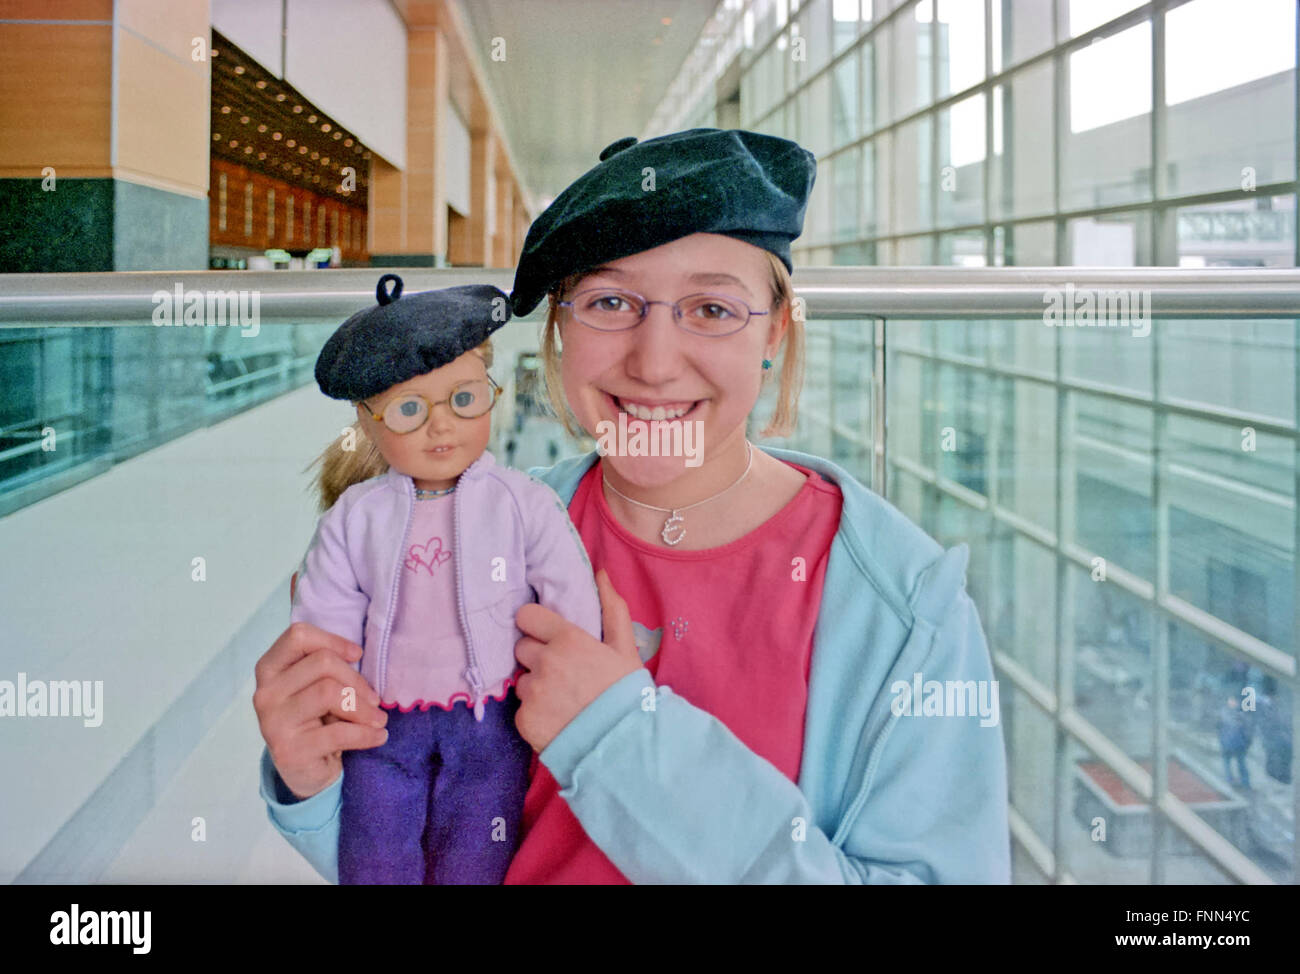 a-little-girl-and-her-doll-with-matching-berets-in-the-airport-logan-FNN4YC.jpg